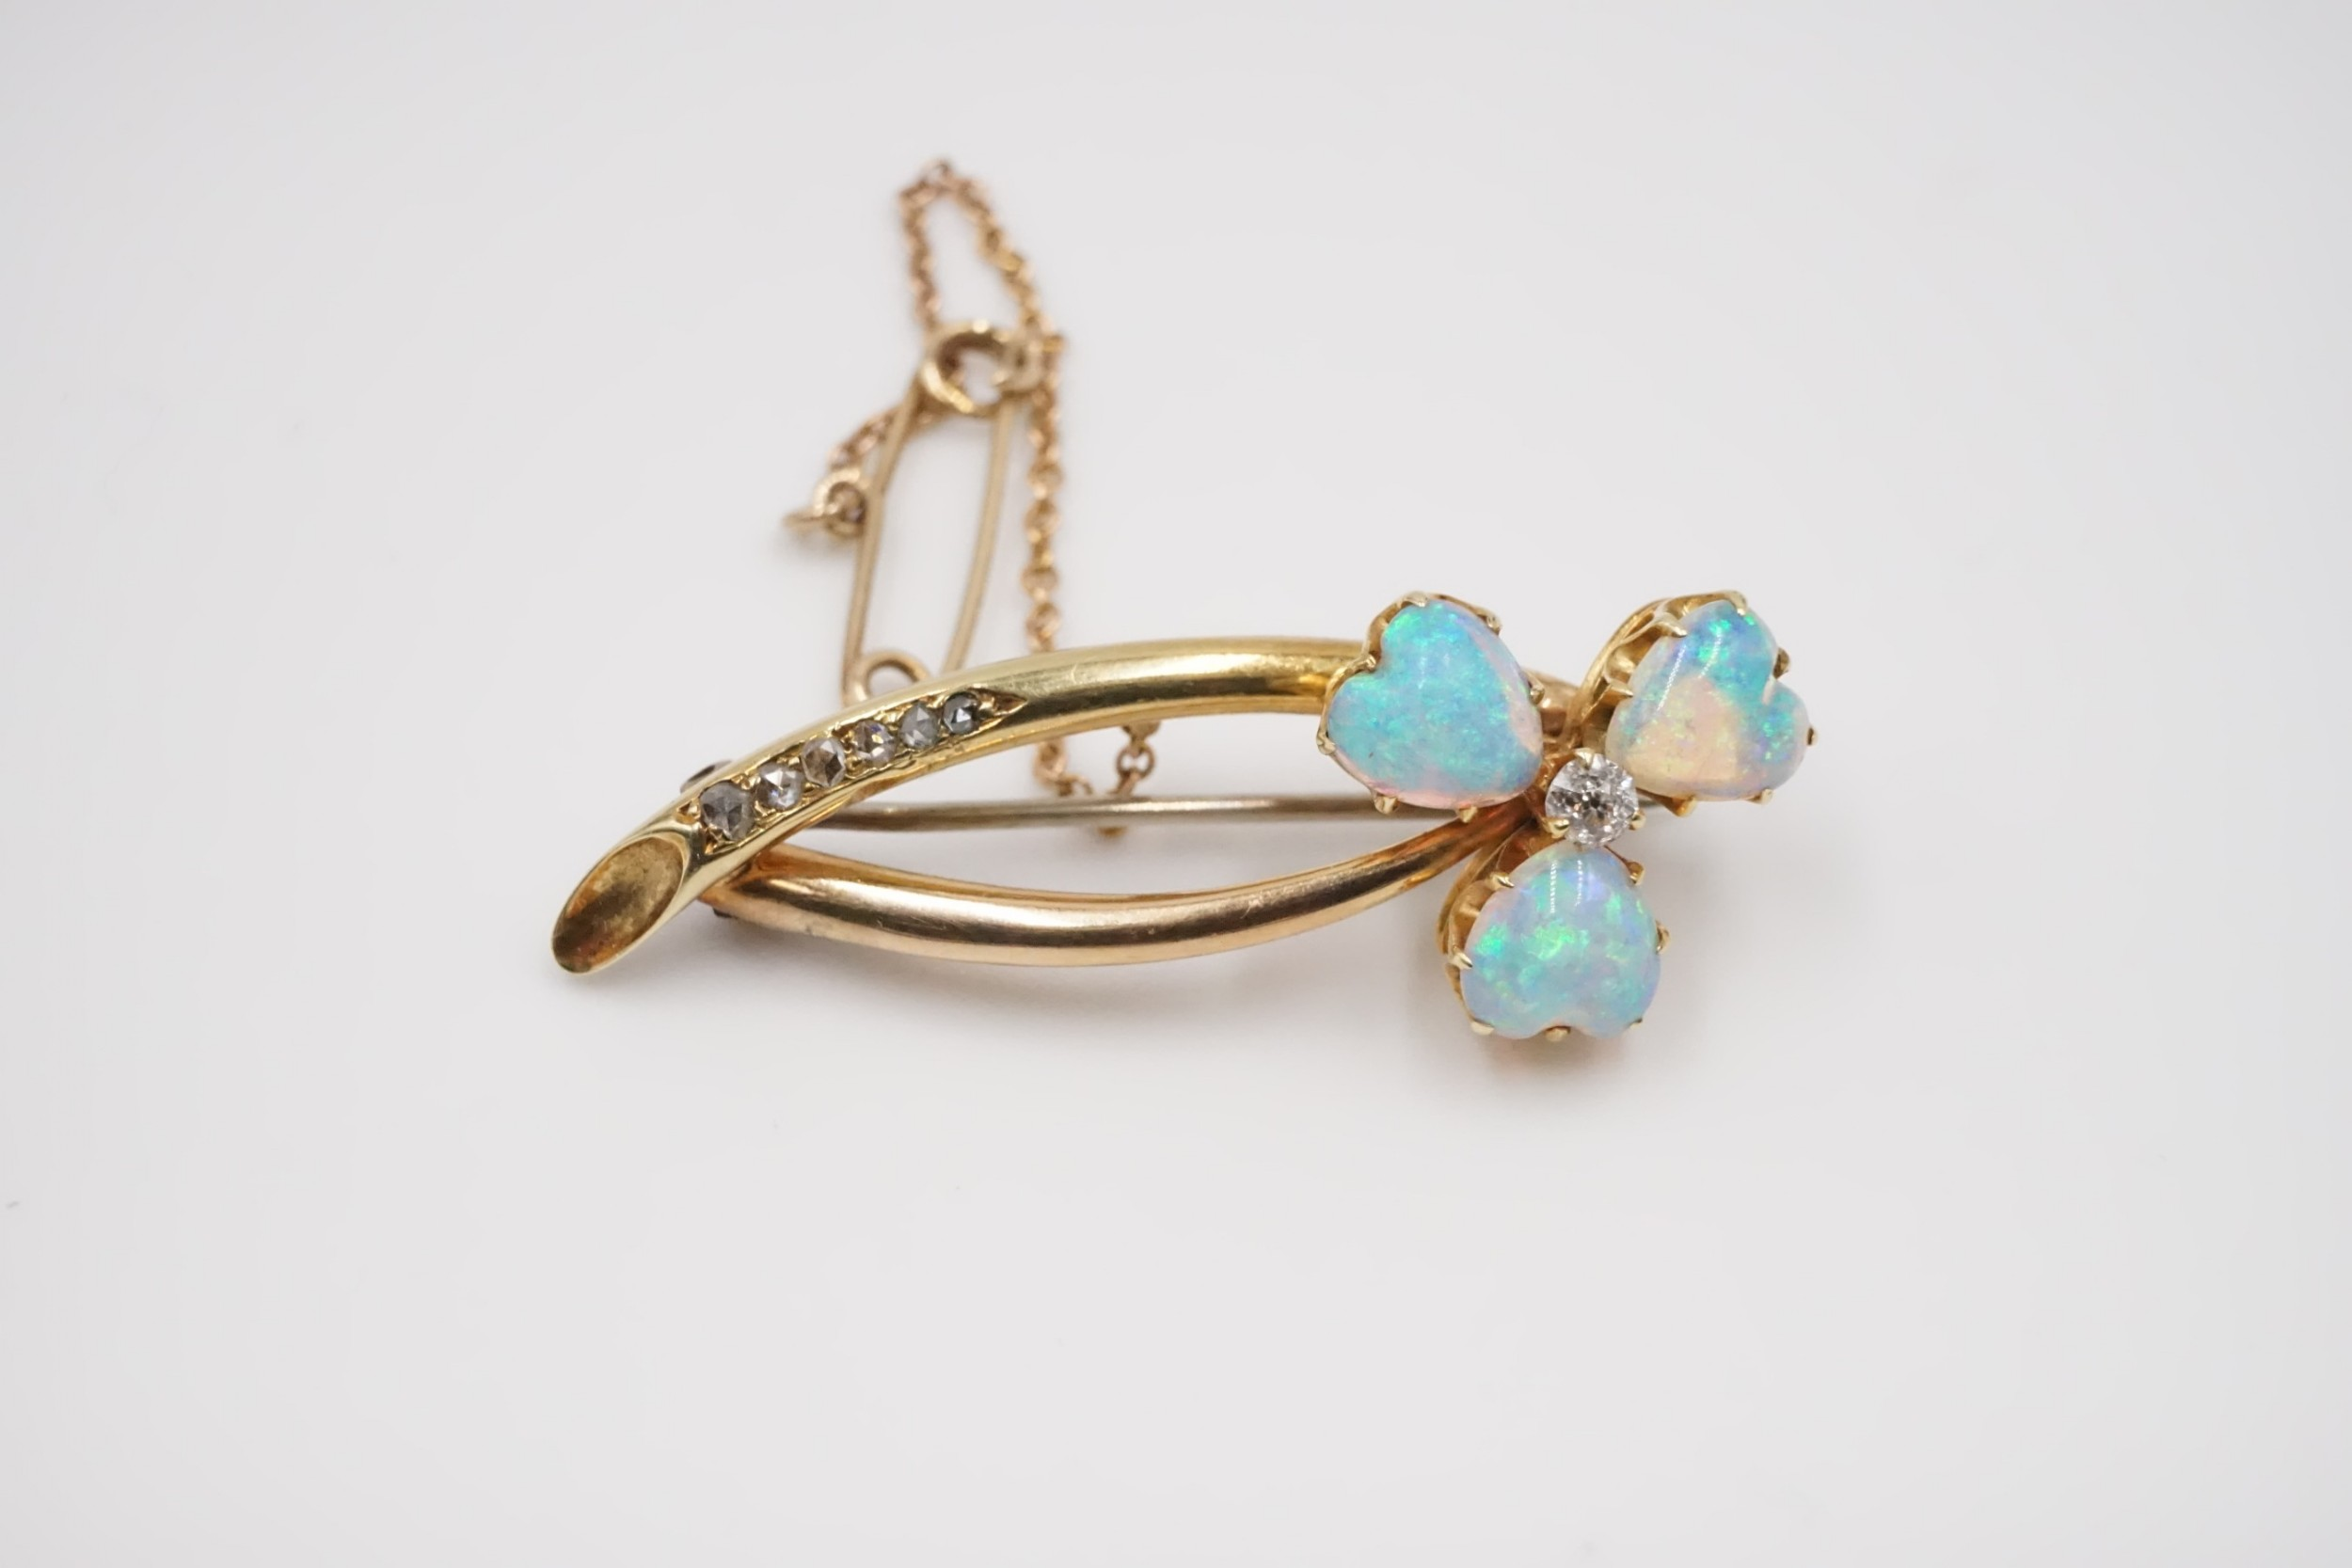 a 18ct gold brooch with top quality opal hearts and diamonds circa 1900